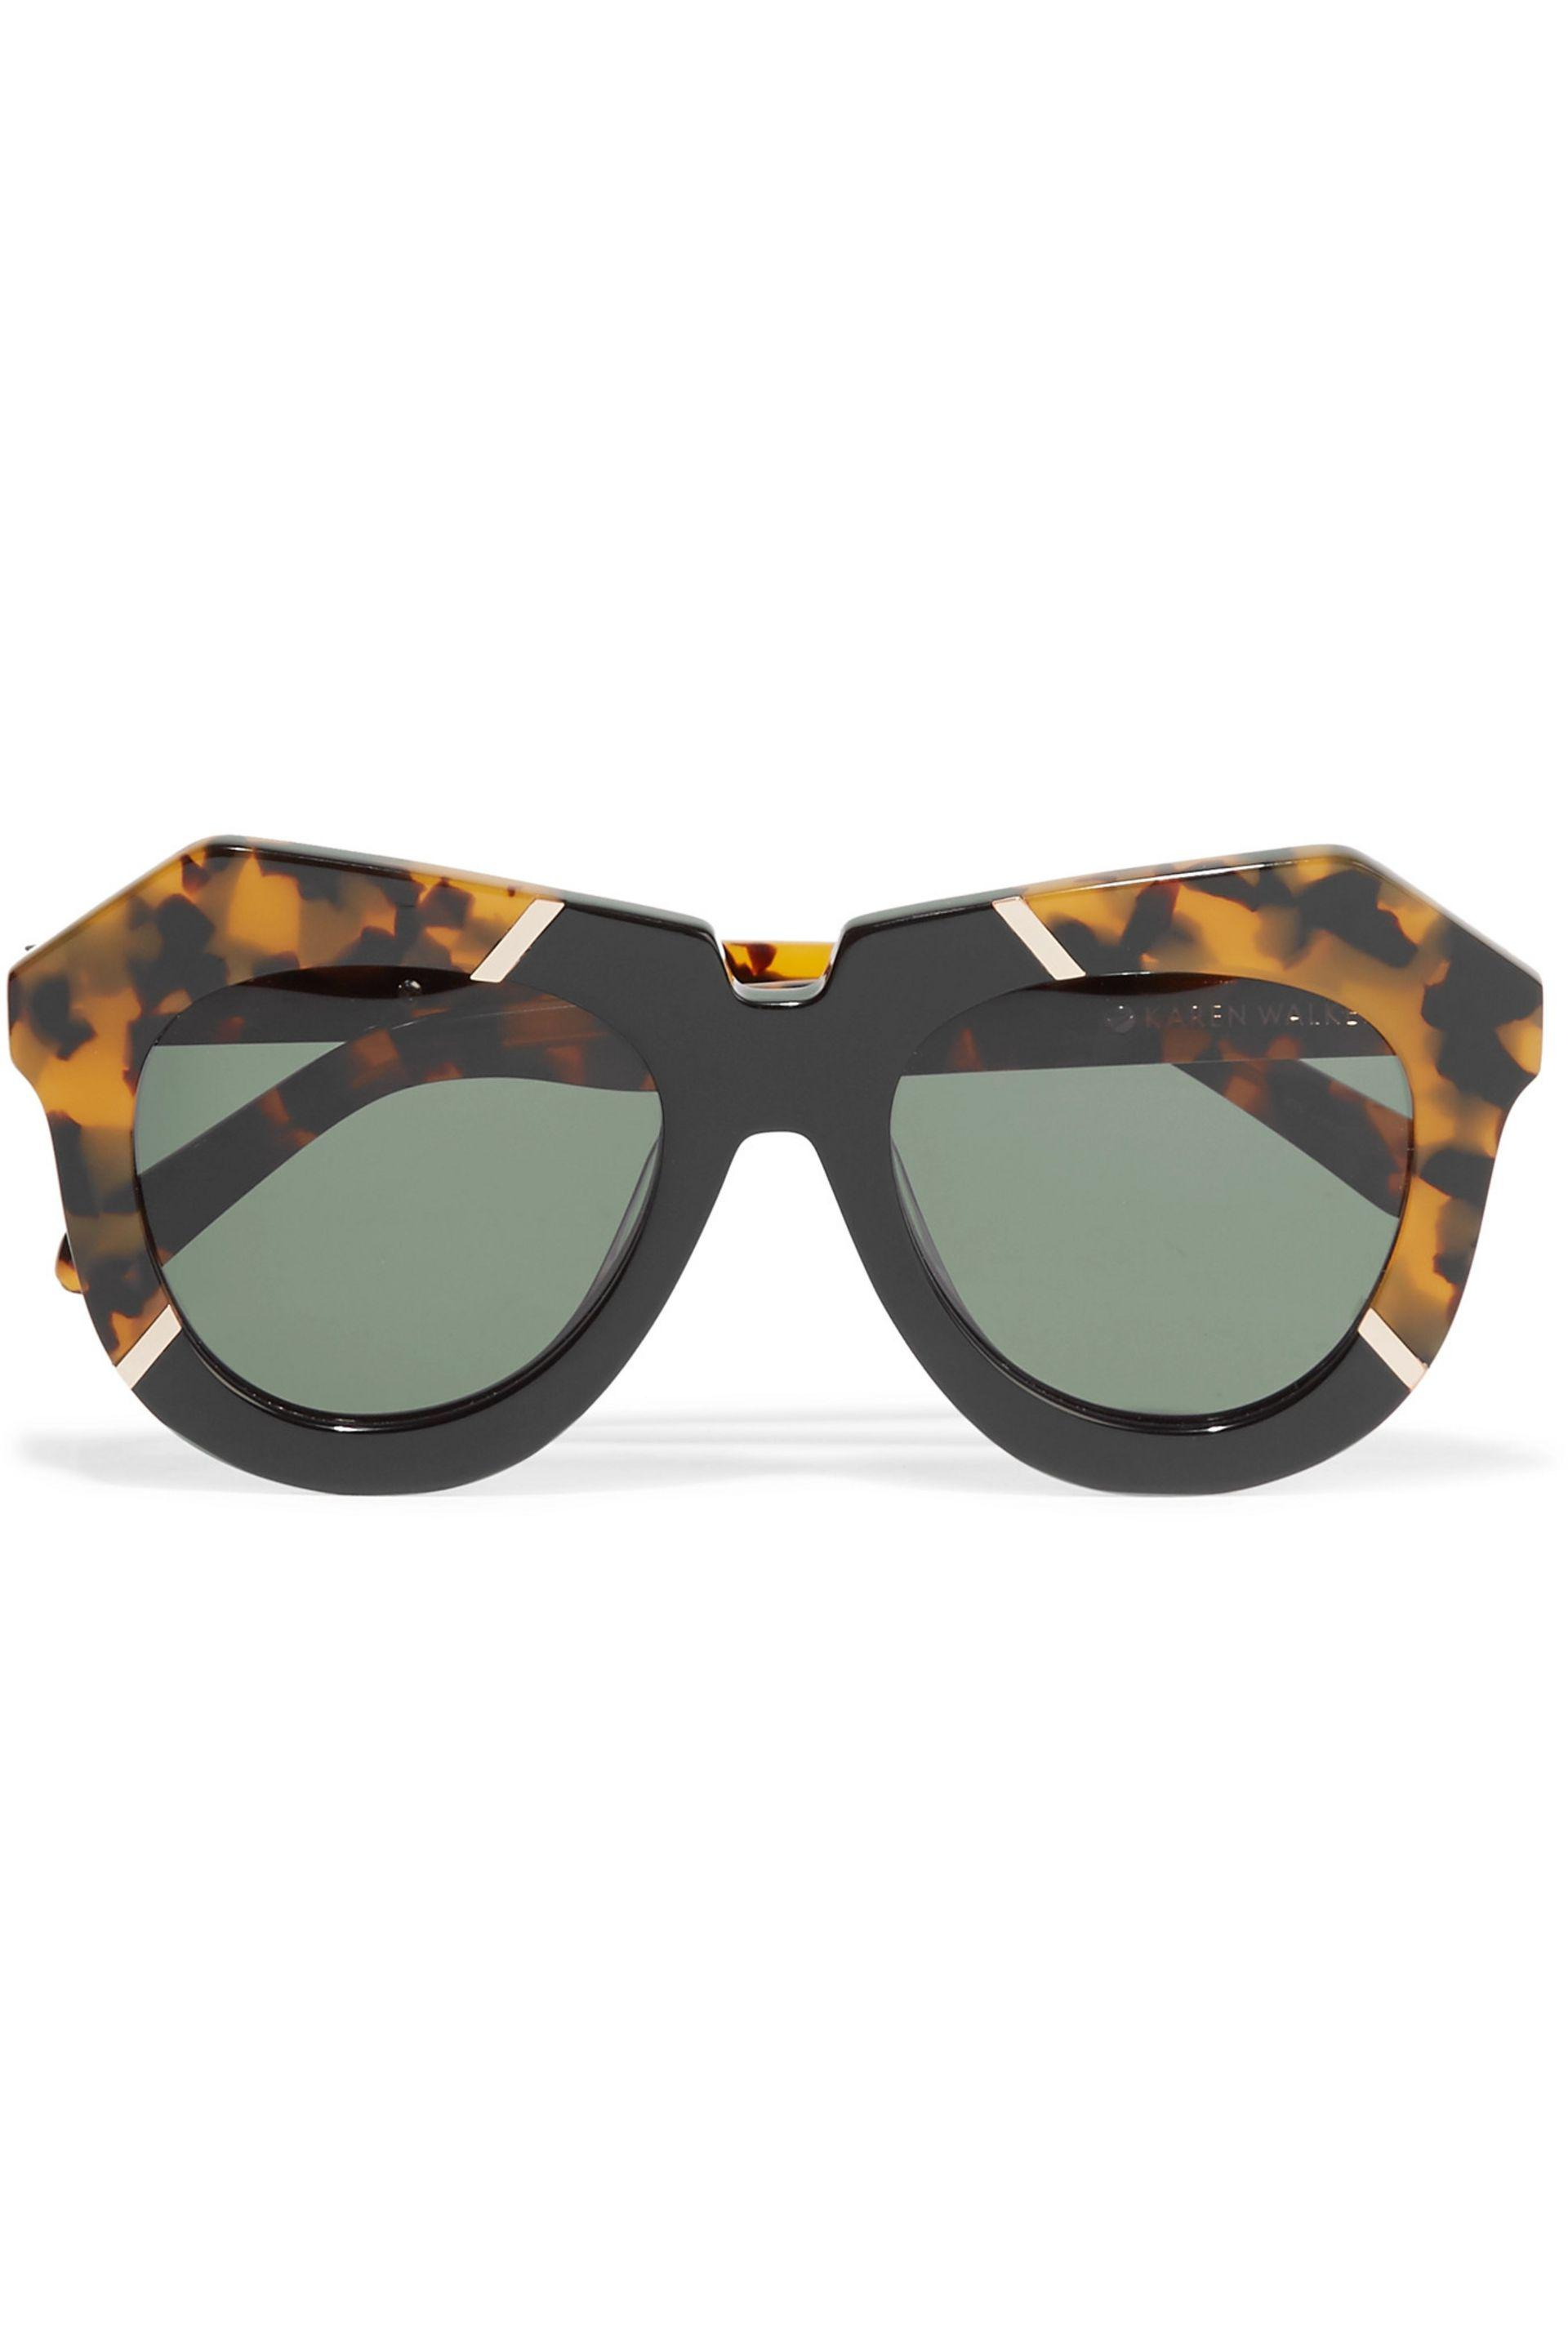 Karen Walker Woman Hollywood Pool Round-frame Acetate Glasses Brown Size ONESIZE Karen Walker GA6QWTZPYs